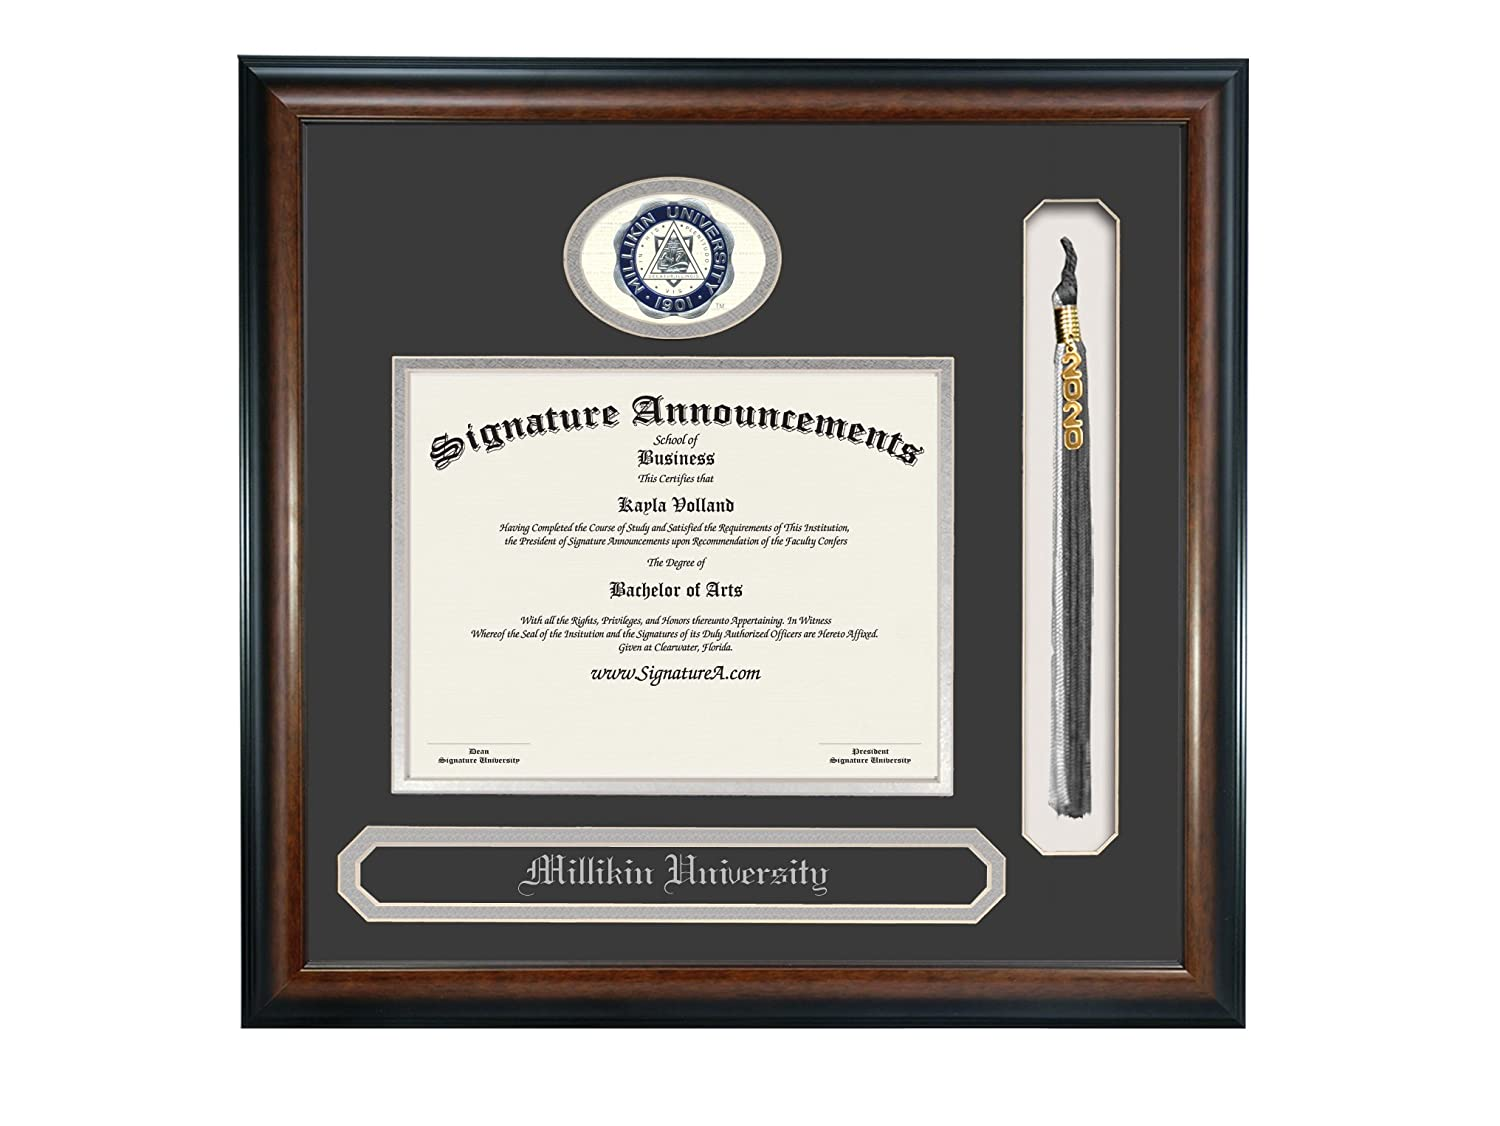 Name /& Tassel Graduation Diploma Frame 16 x 16 Matte Mahogany Sculpted Foil Seal Signature Announcements Millikin University Undergraduate